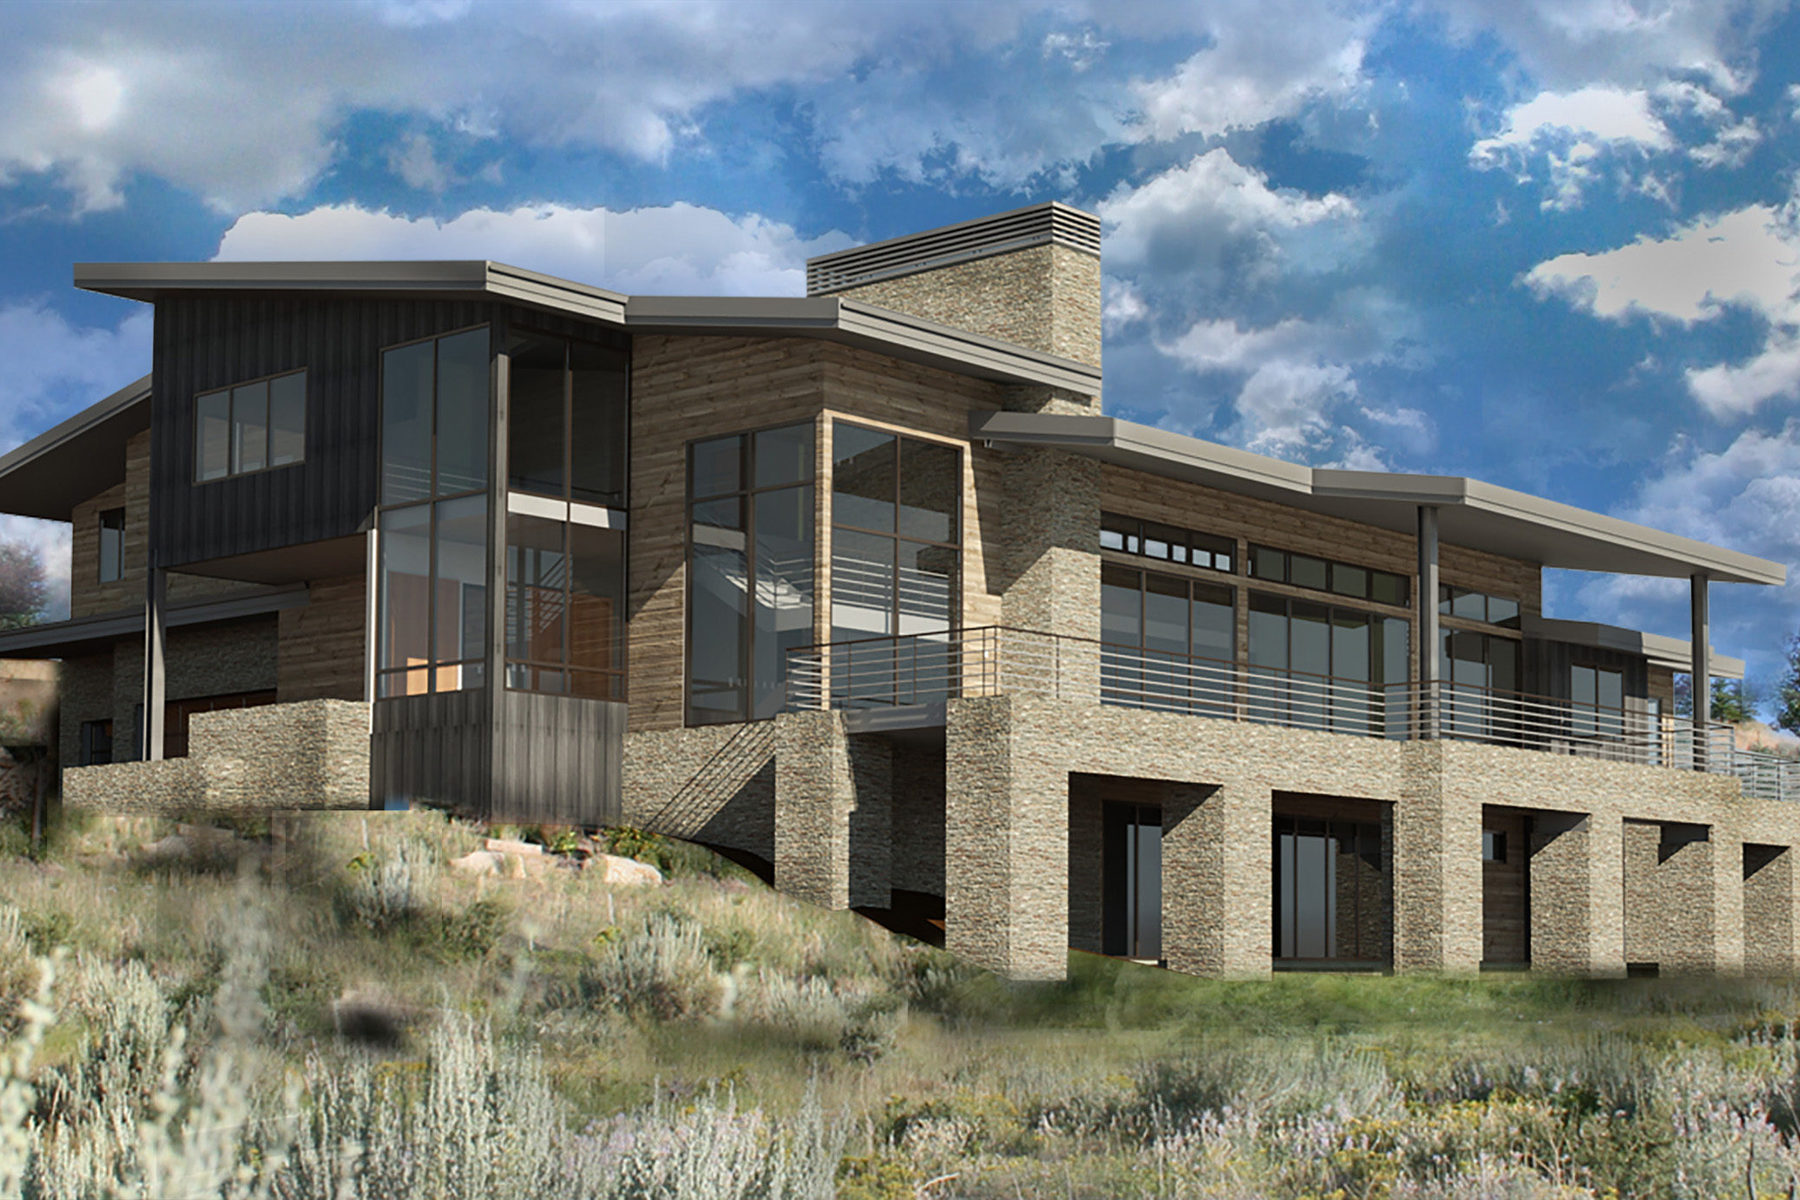 Casa Unifamiliar por un Venta en Promontory New Contemporary 8340 N Ranch Garden Rd Park City, Utah, 84098 Estados Unidos